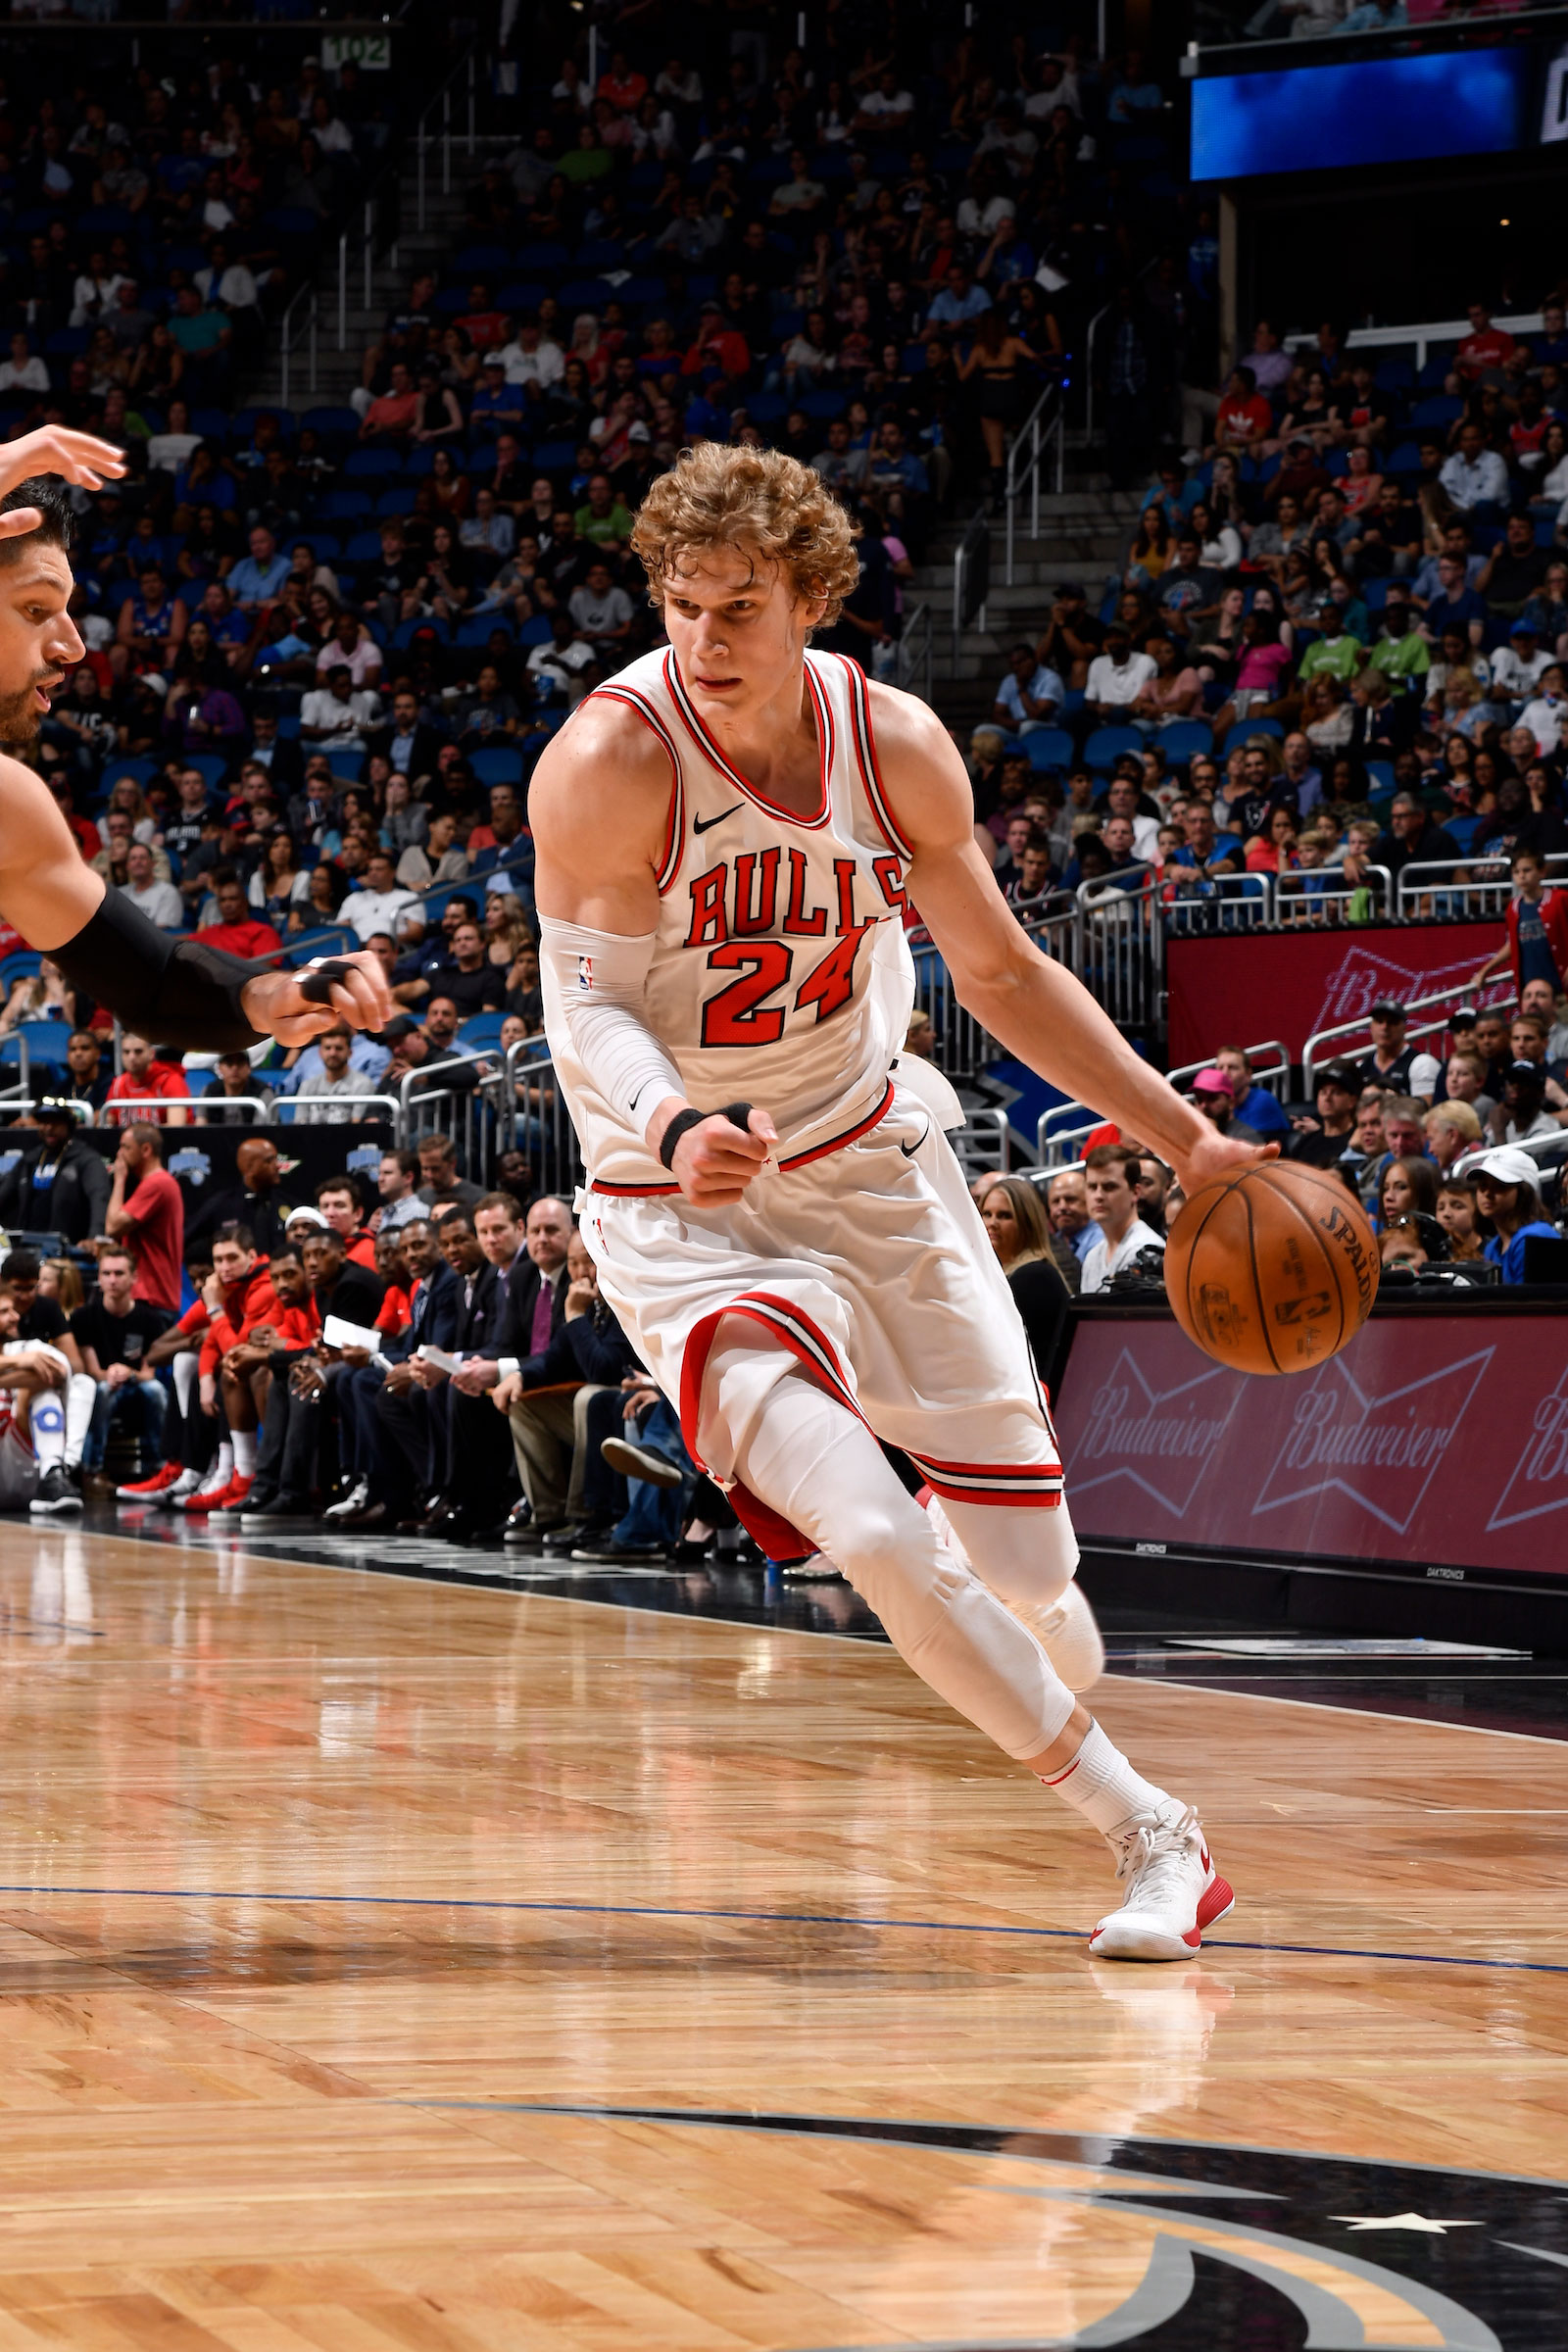 Lauri Markkanen #24 of the Chicago Bulls handles the ball against the Orlando Magic on March 30, 2018 at Amway Center in Orlando, Florida.